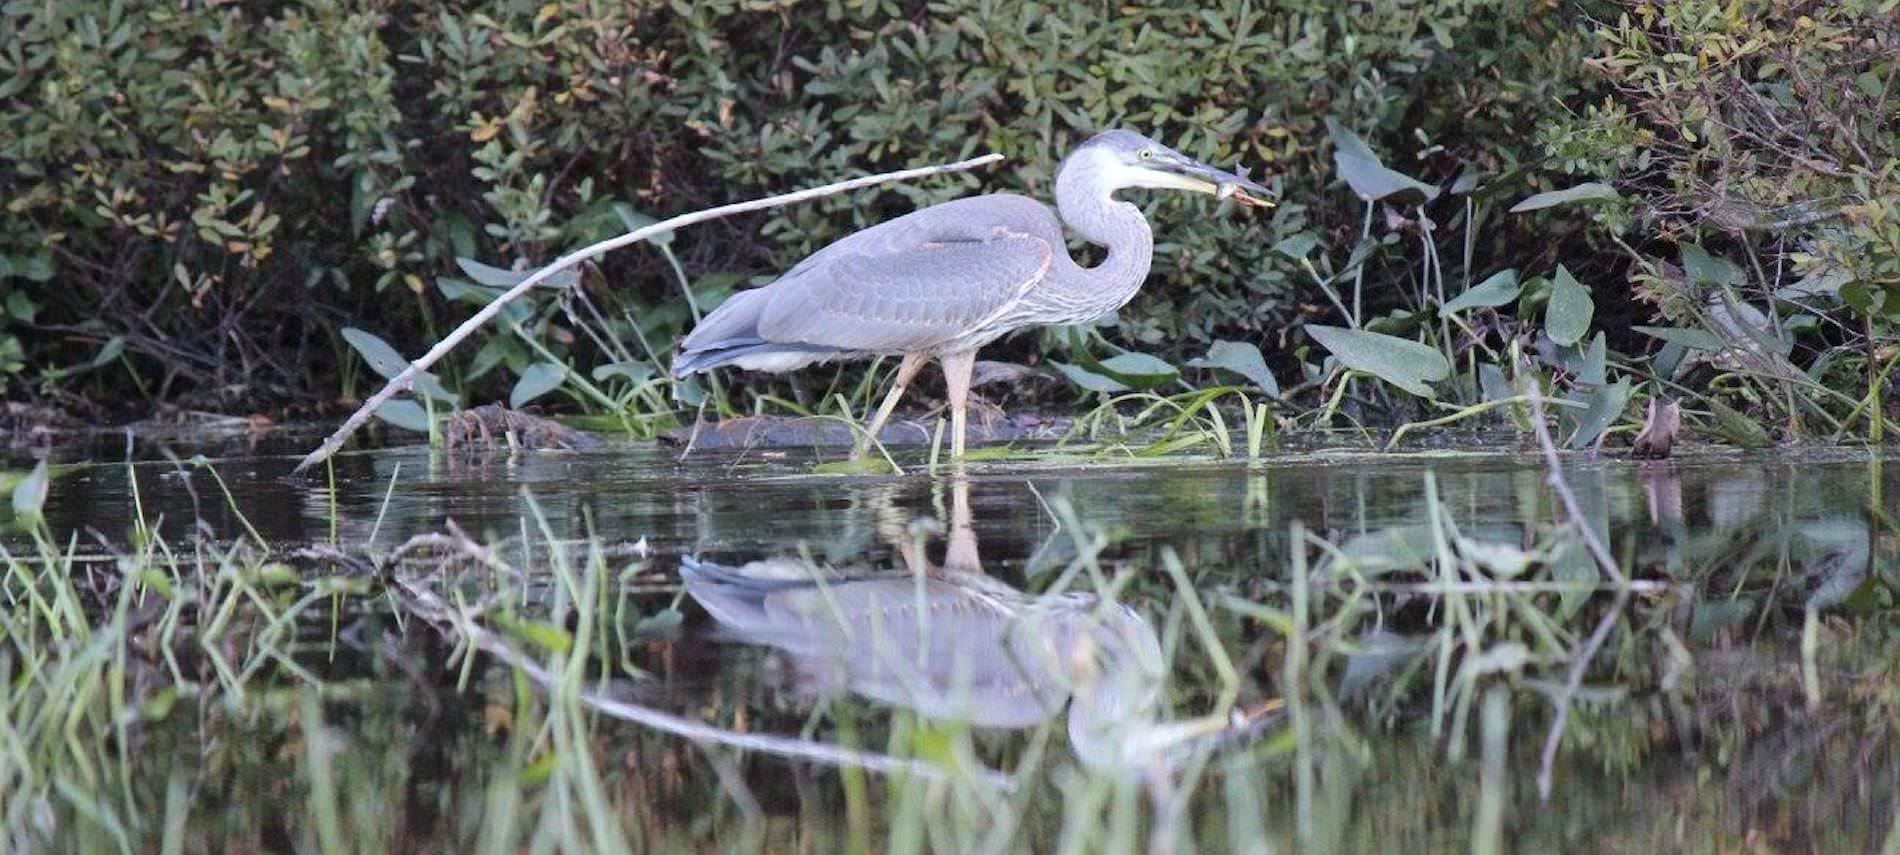 Blue Heron wading through water surrounded by greenery